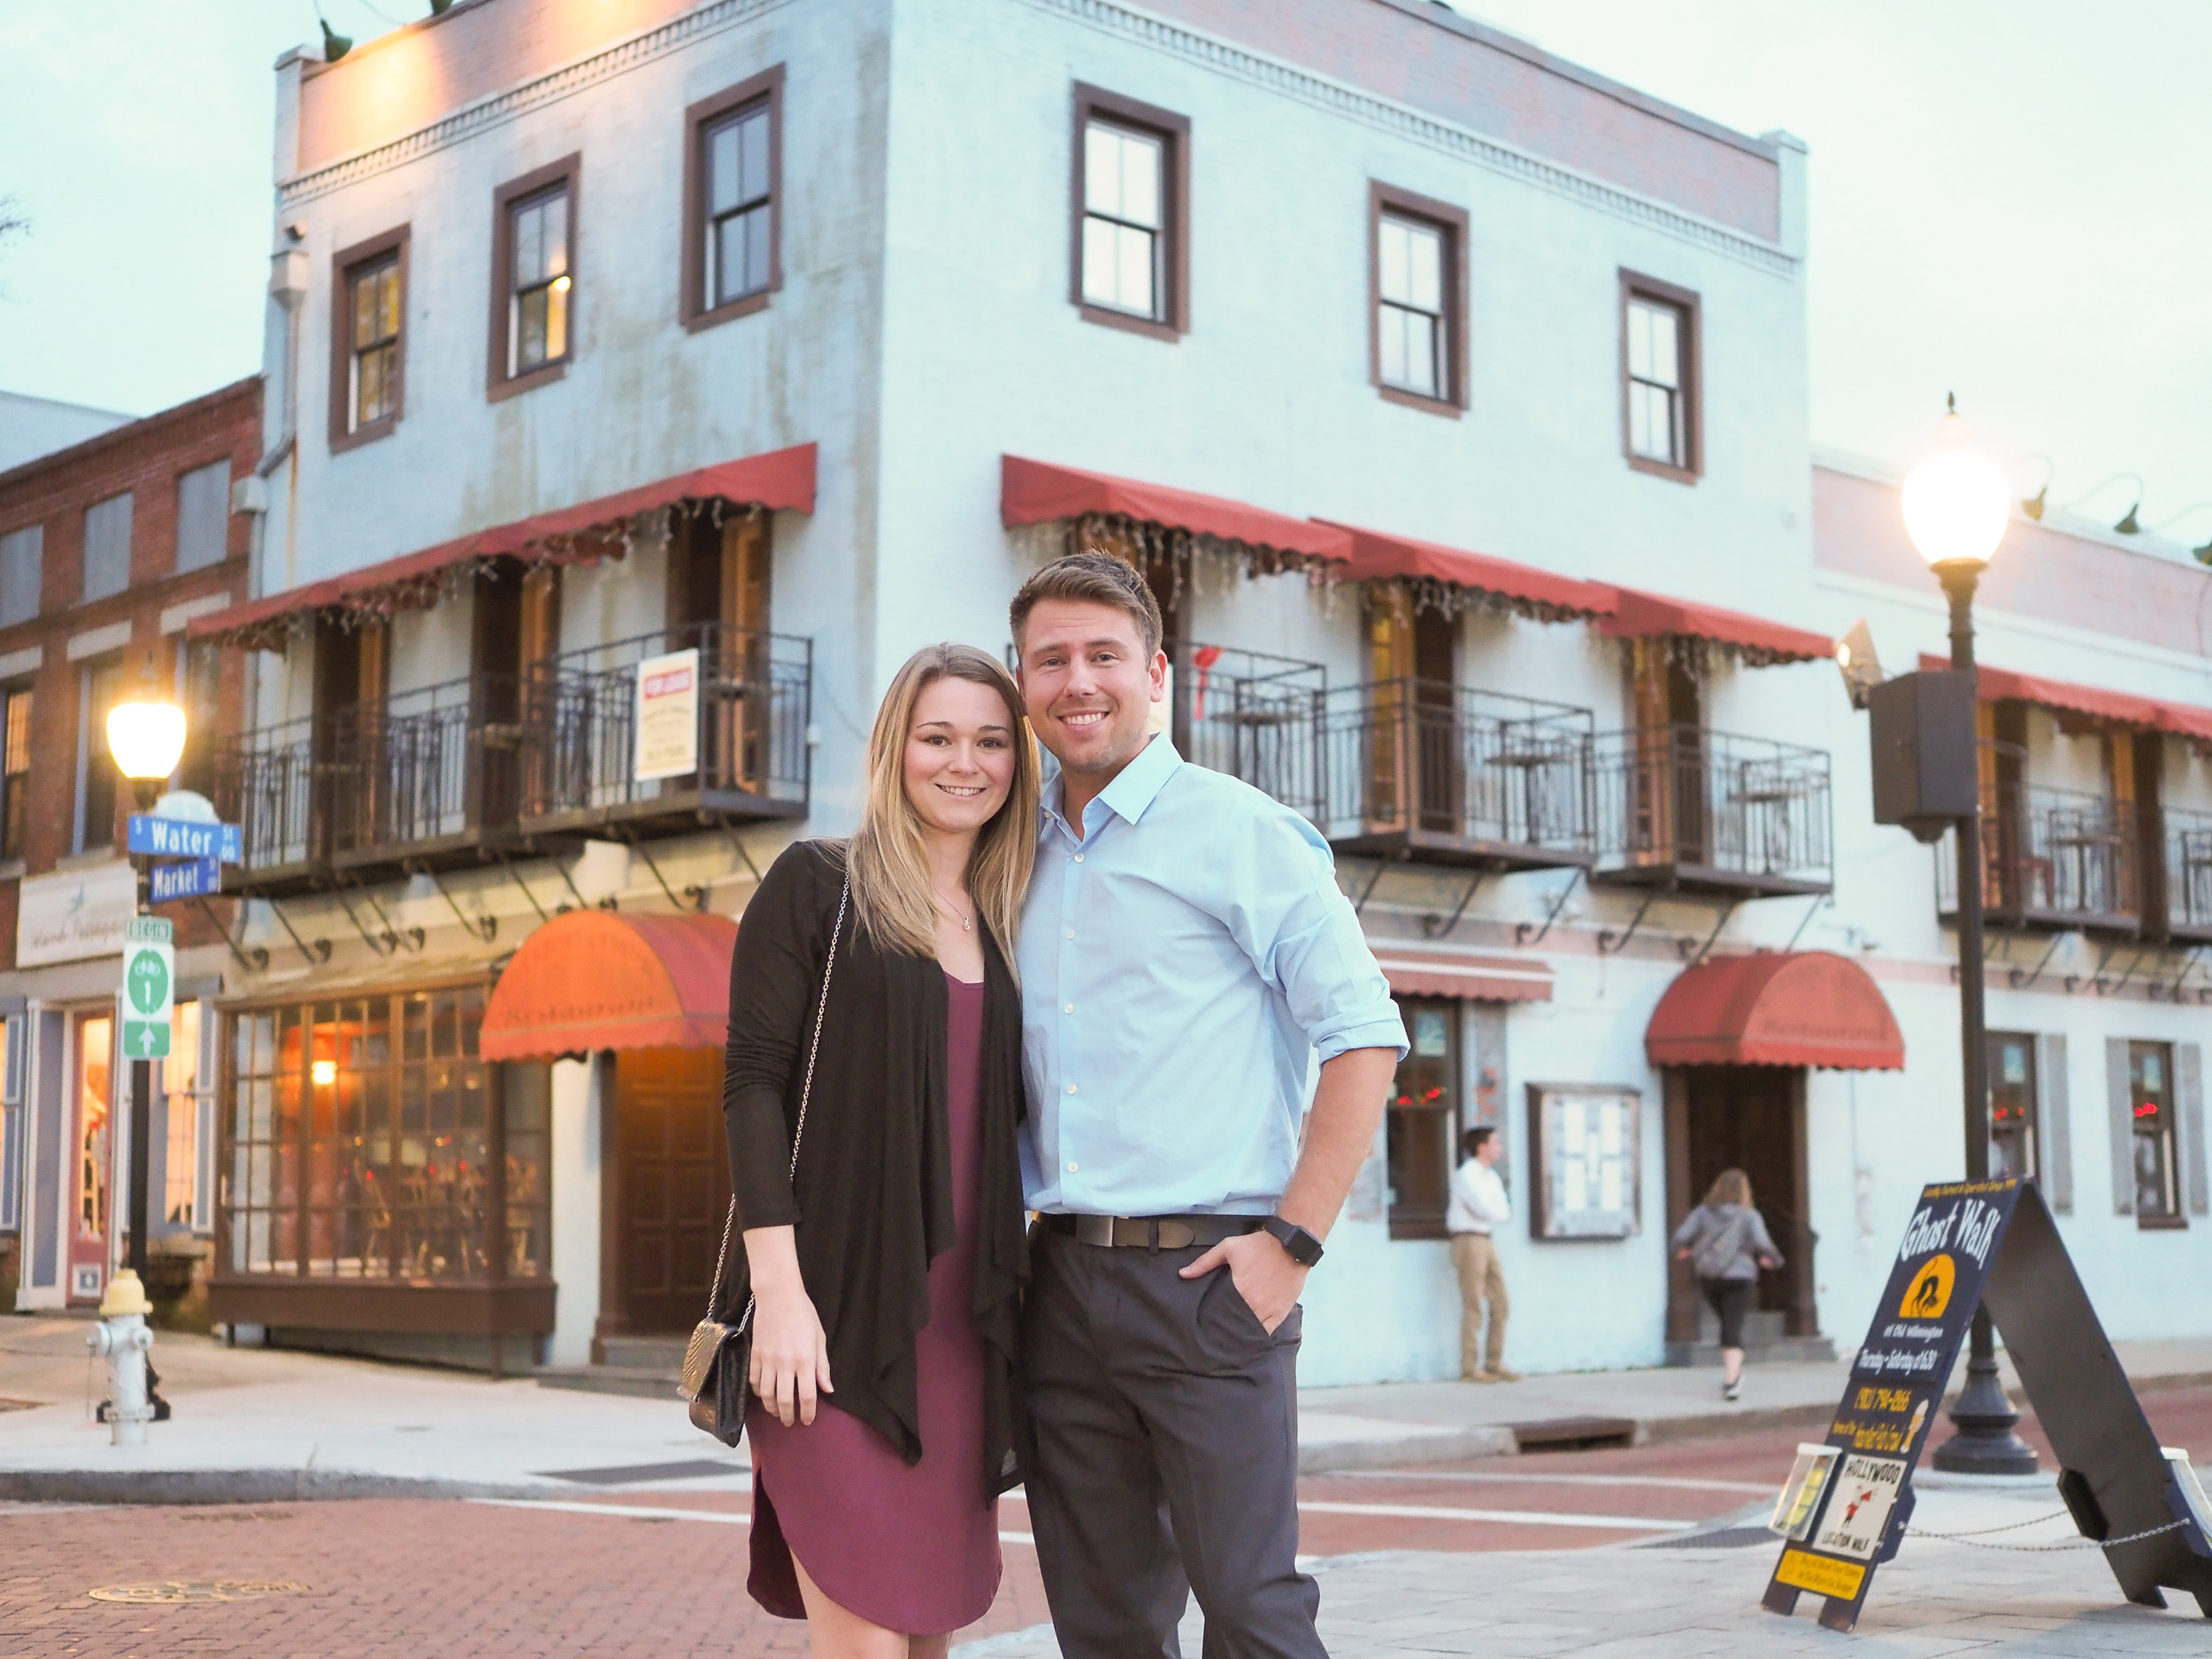 Pose - Posing for a photo in front of Riverboat Landing restaurant in downtown Wilmington, NC.